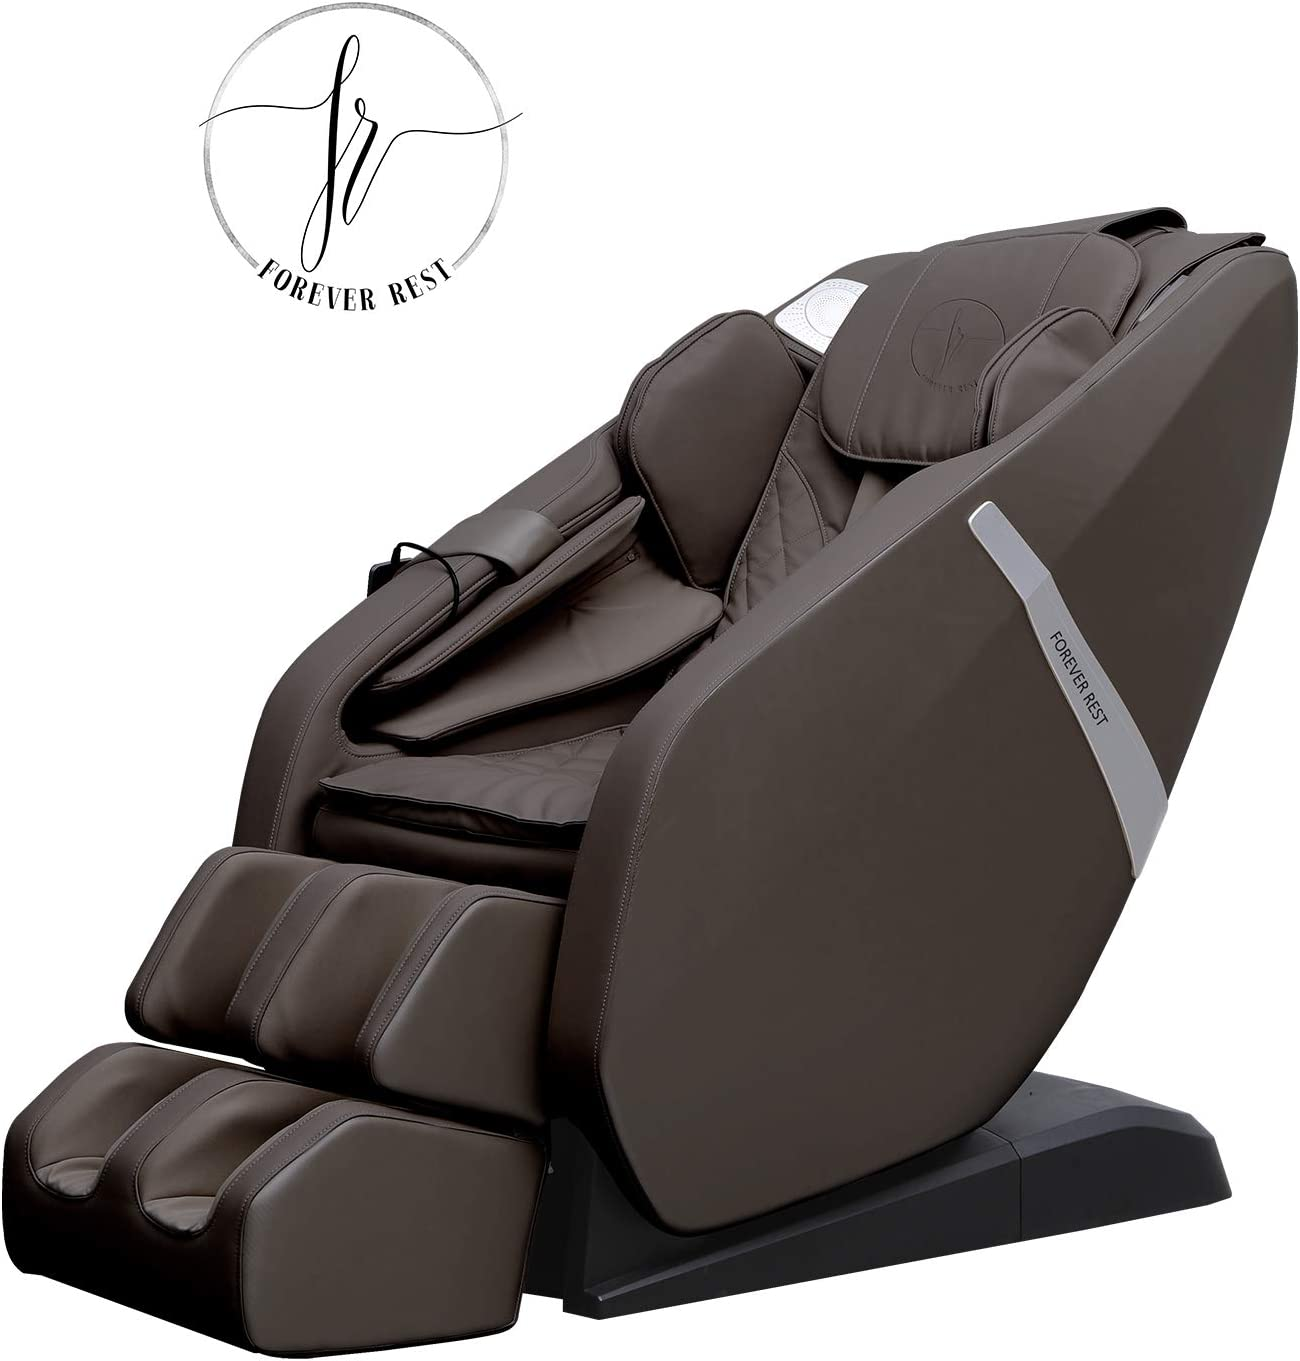 FR-6KSL Massage Chair Review